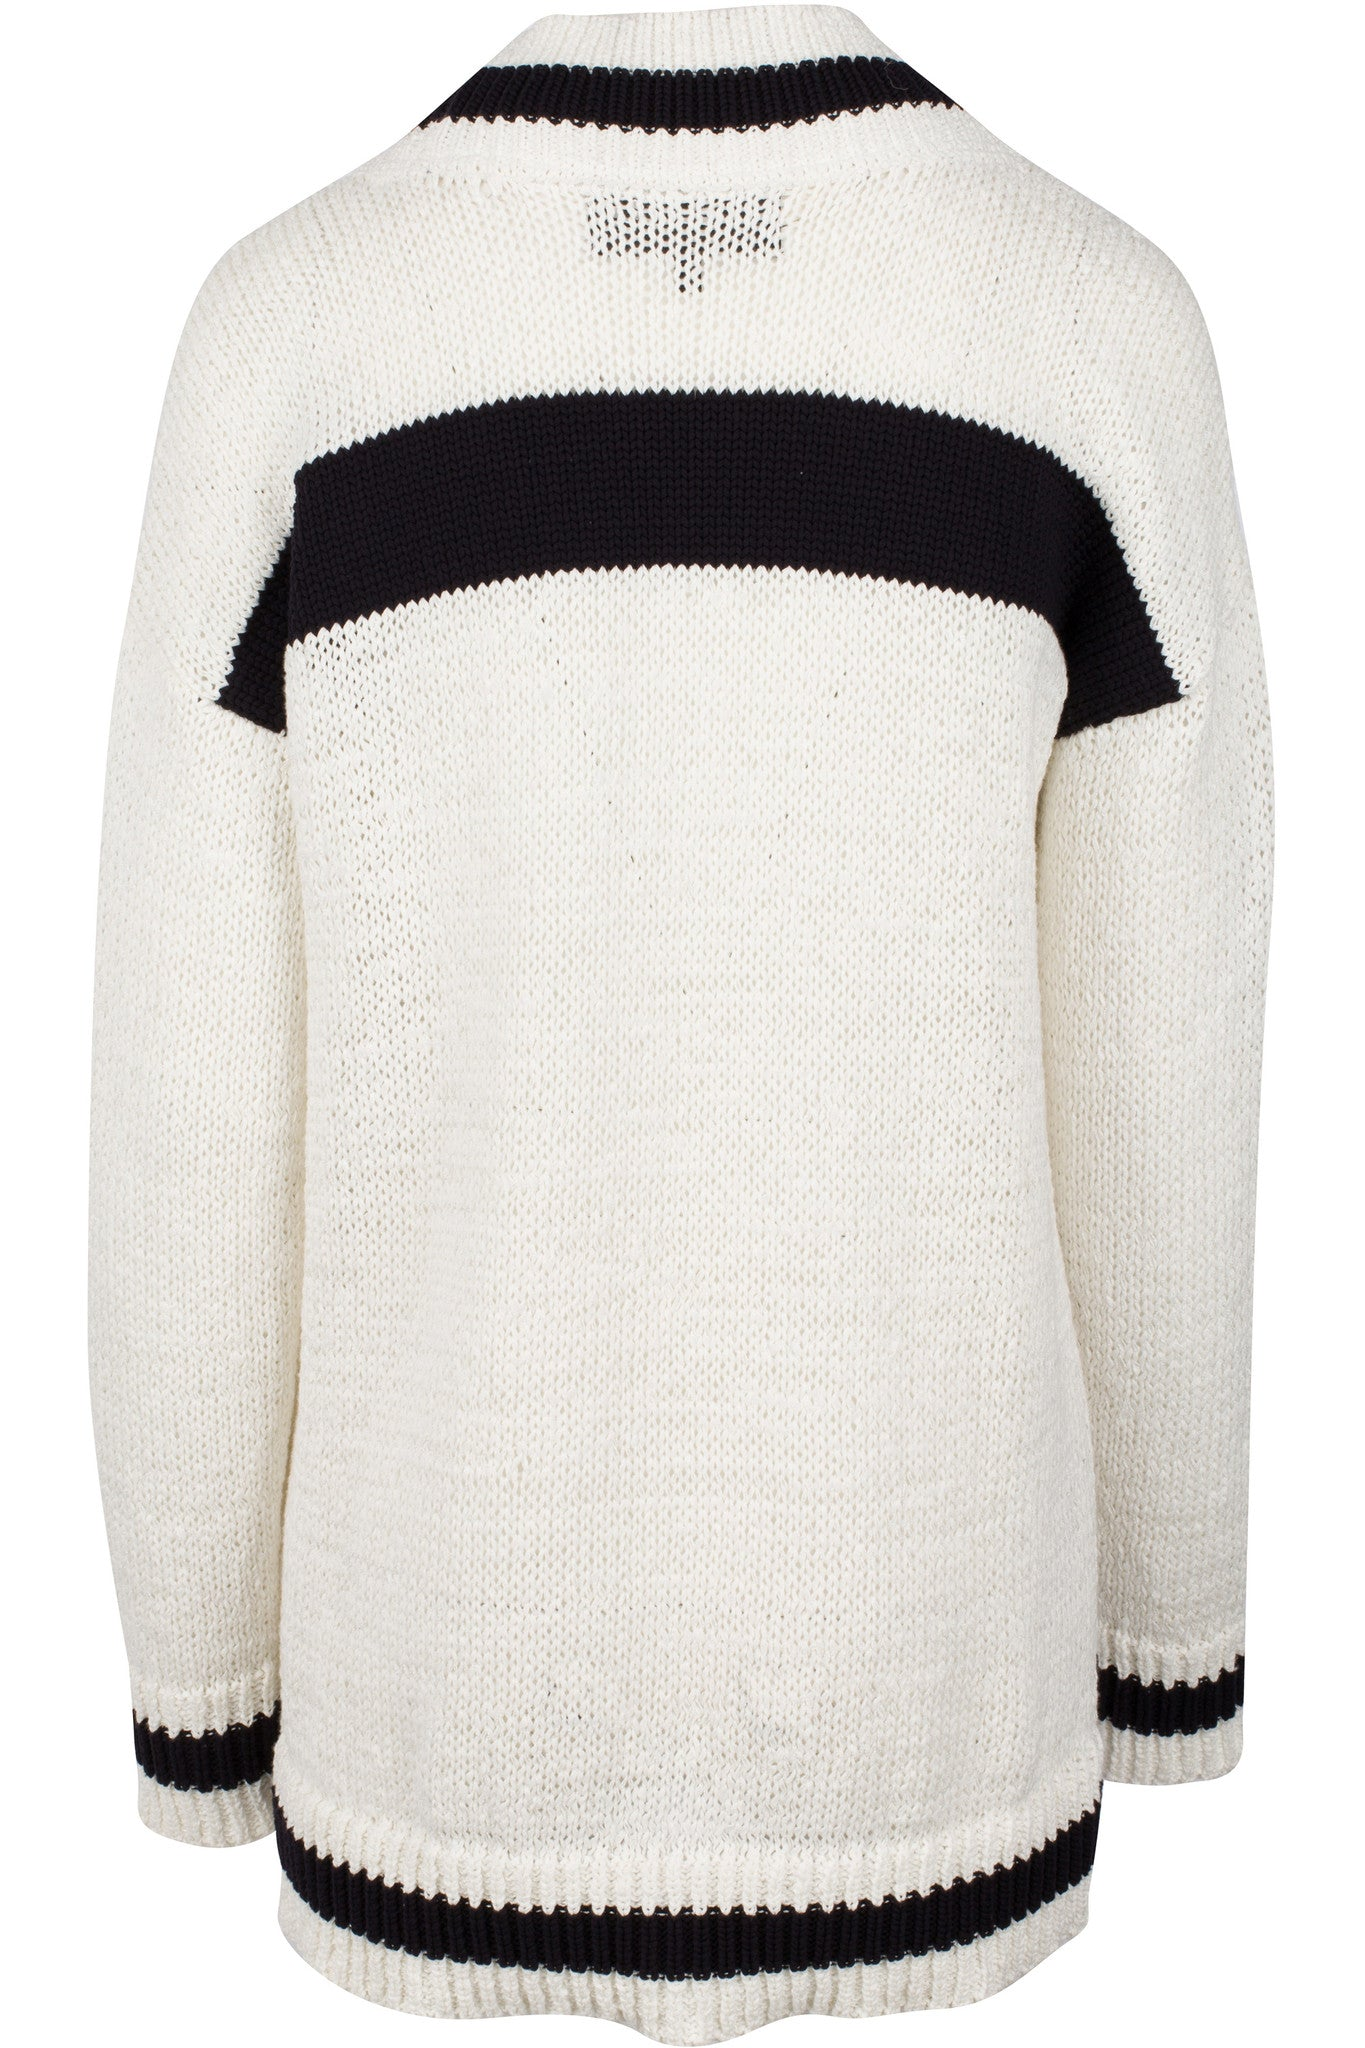 V-NECK RUGBY SWEATER TOPS by KENDALL + KYLIE